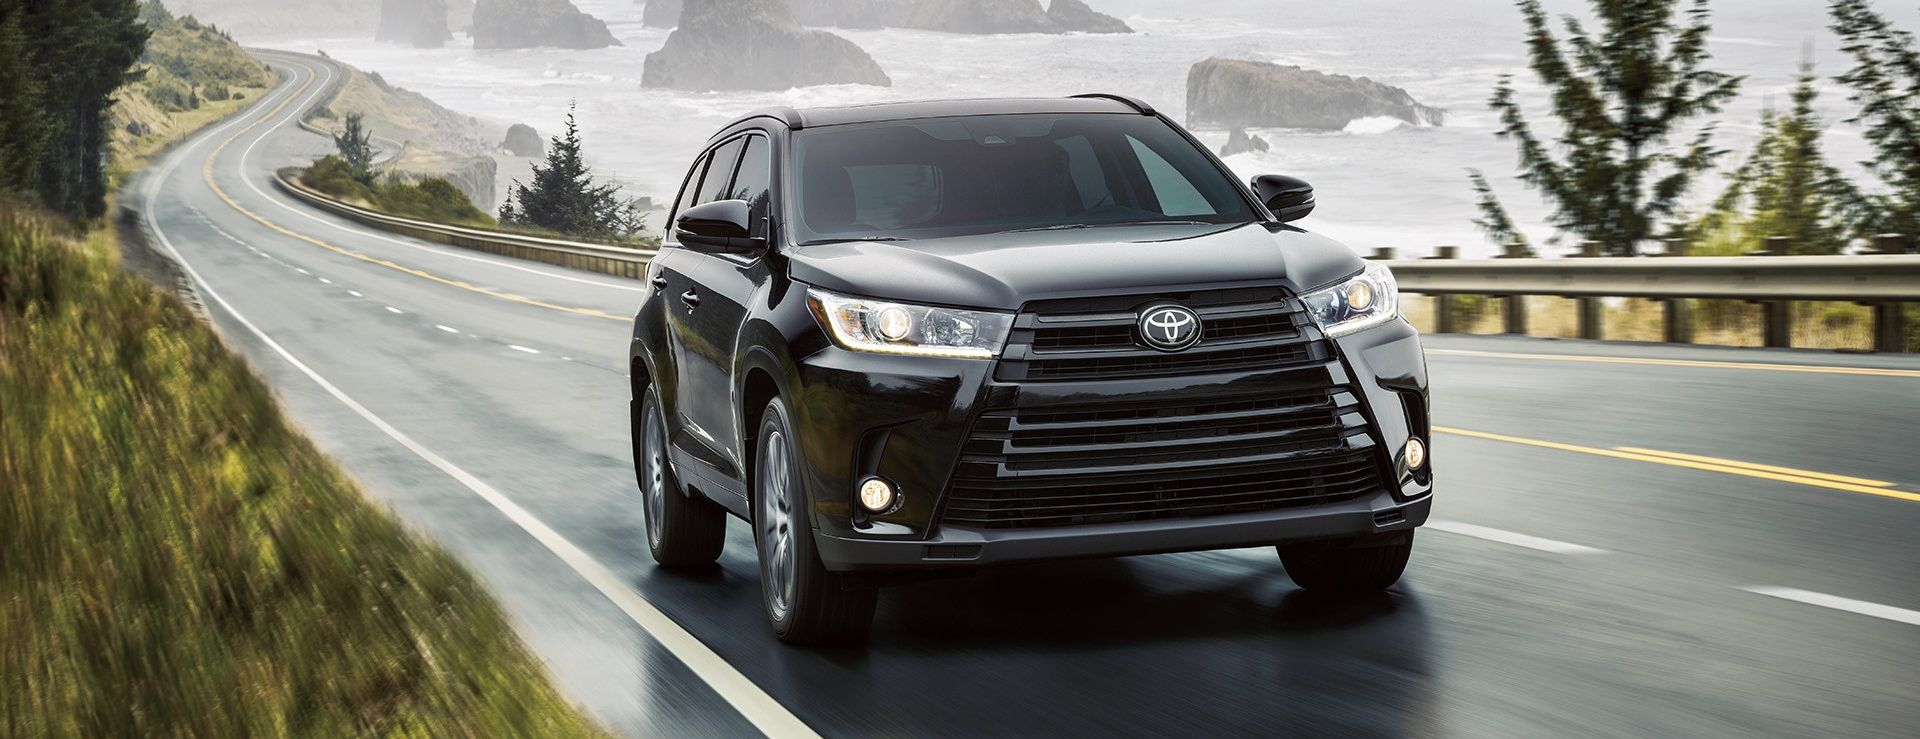 2018 Toyota Highlander for Sale near Cherry Valley, IL